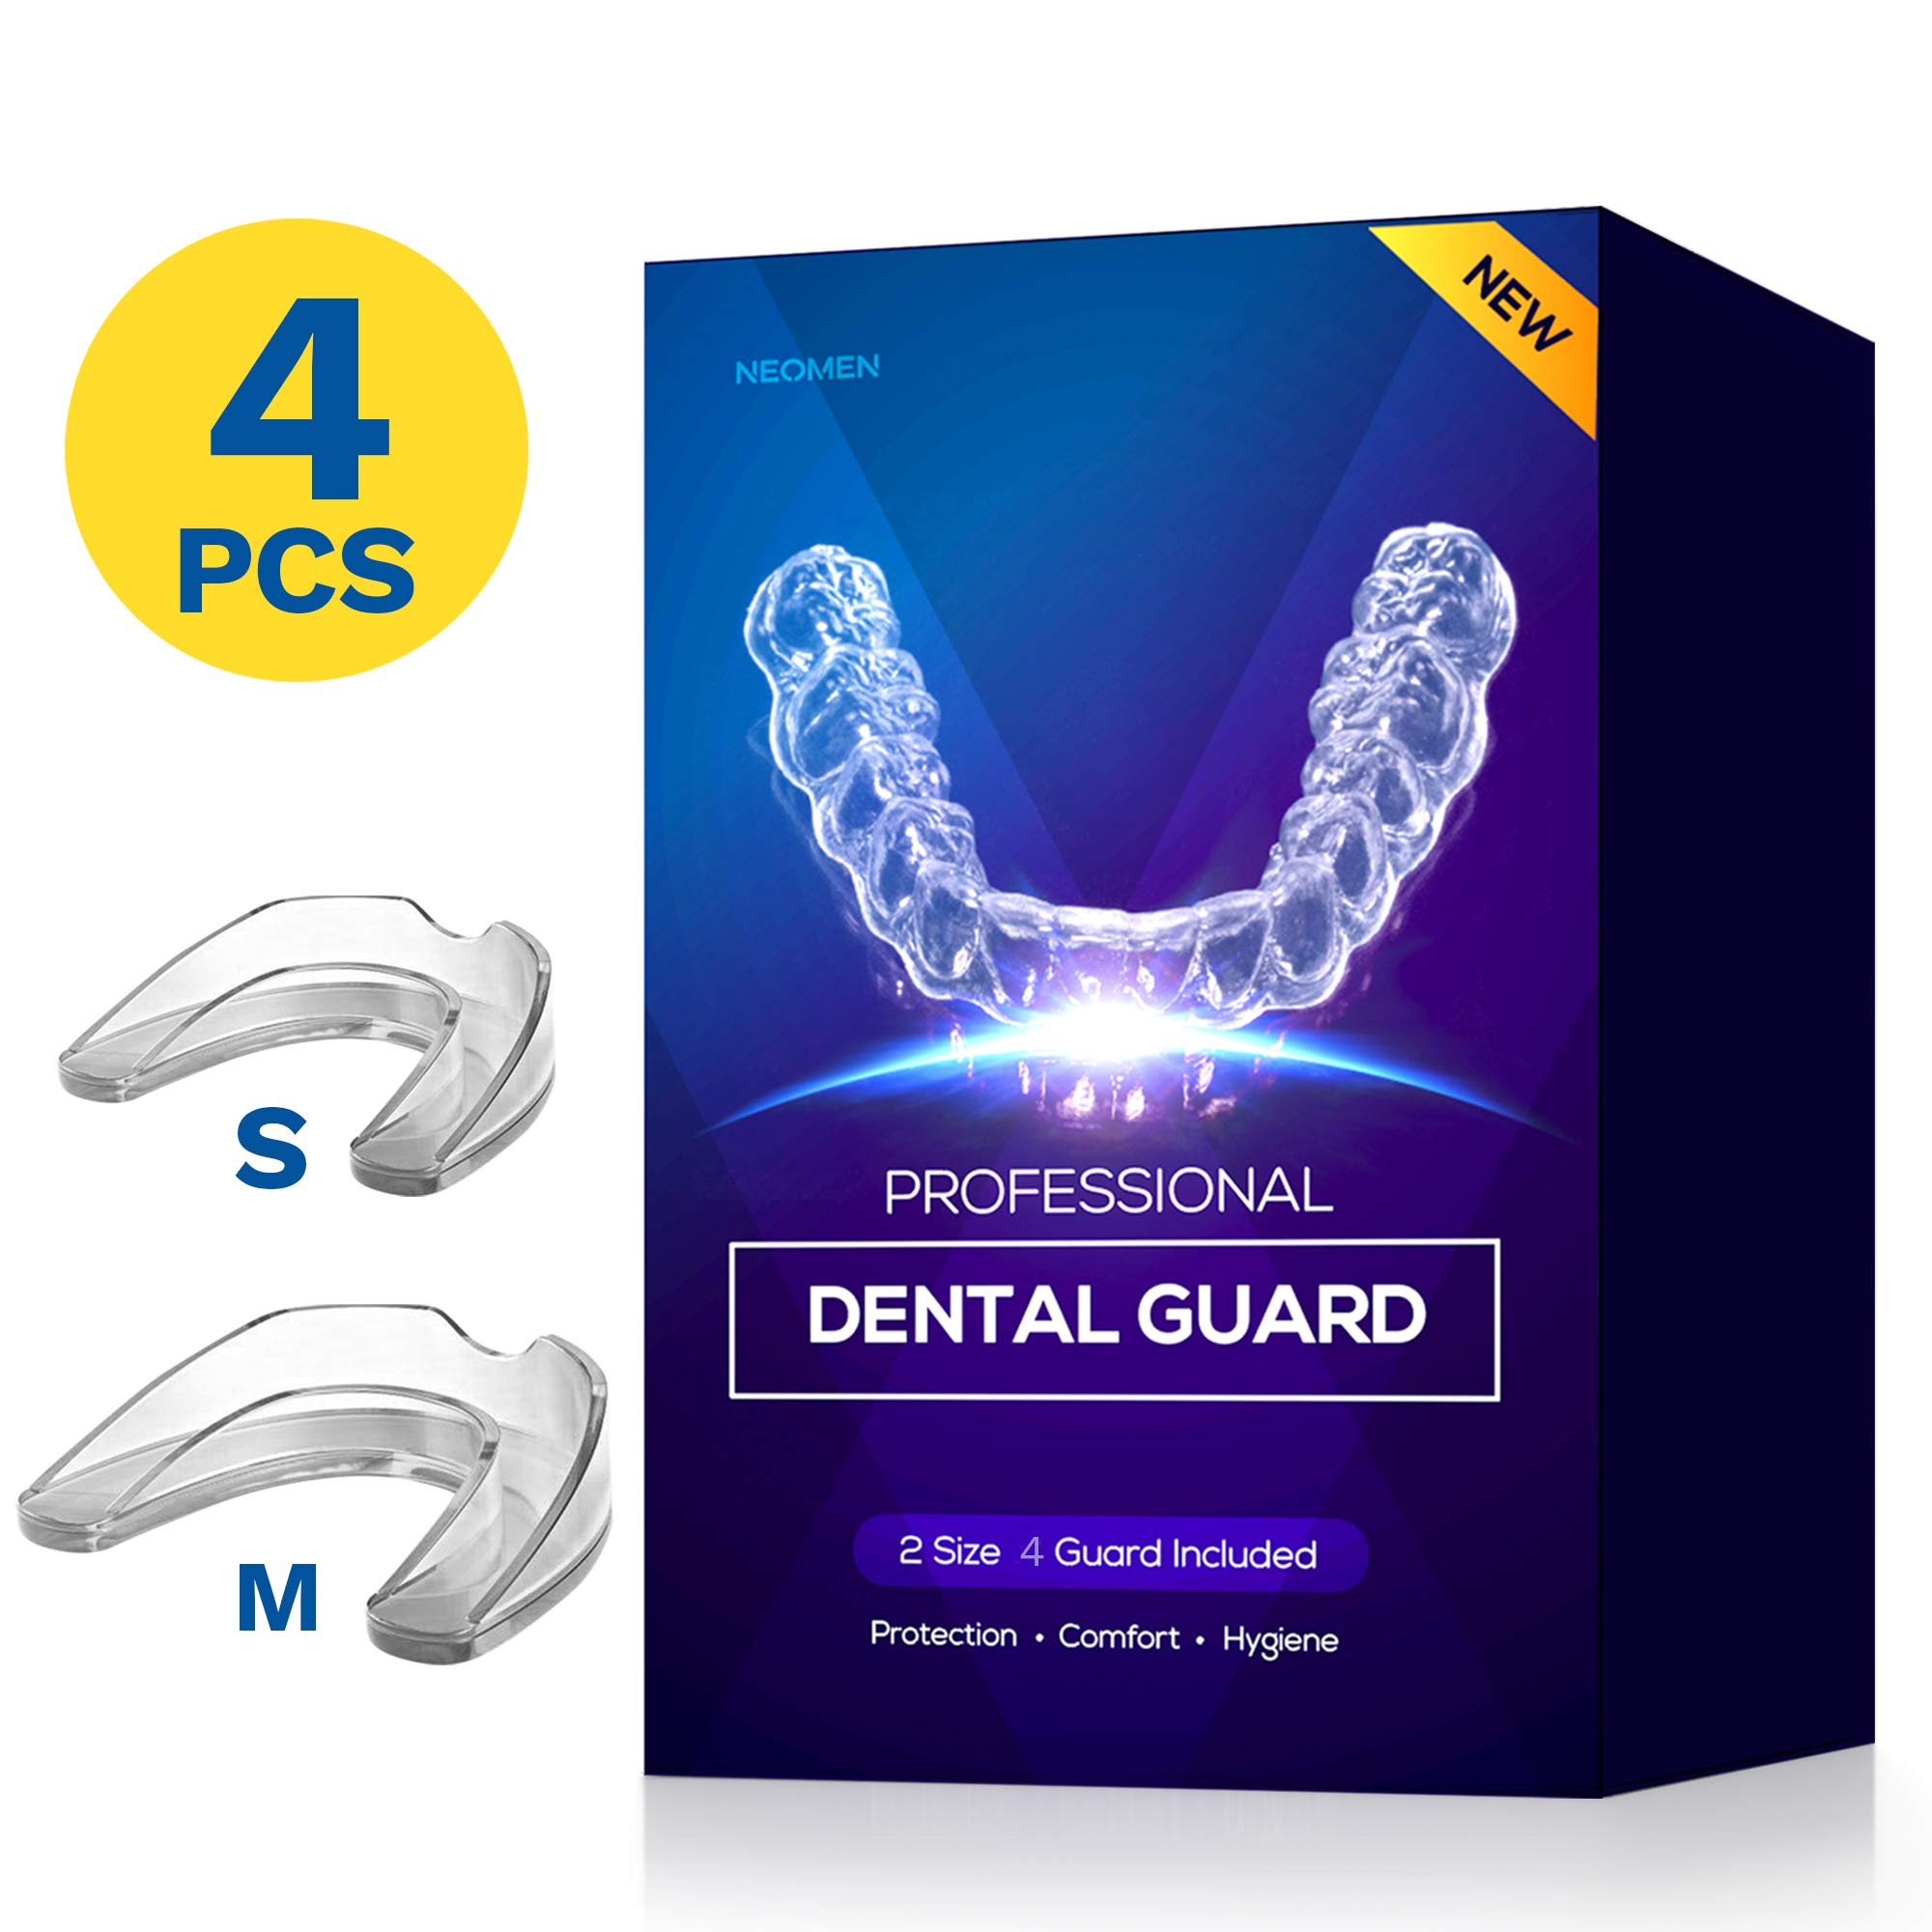 Neomen Professional Dental Guard - 2 Sizes, Pack of 4 - New Upgraded Anti Grinding Dental Night Guard, Stops Bruxism, Tmj & Eliminates Teeth Clenching, 100% Satisfaction by NEOMEN